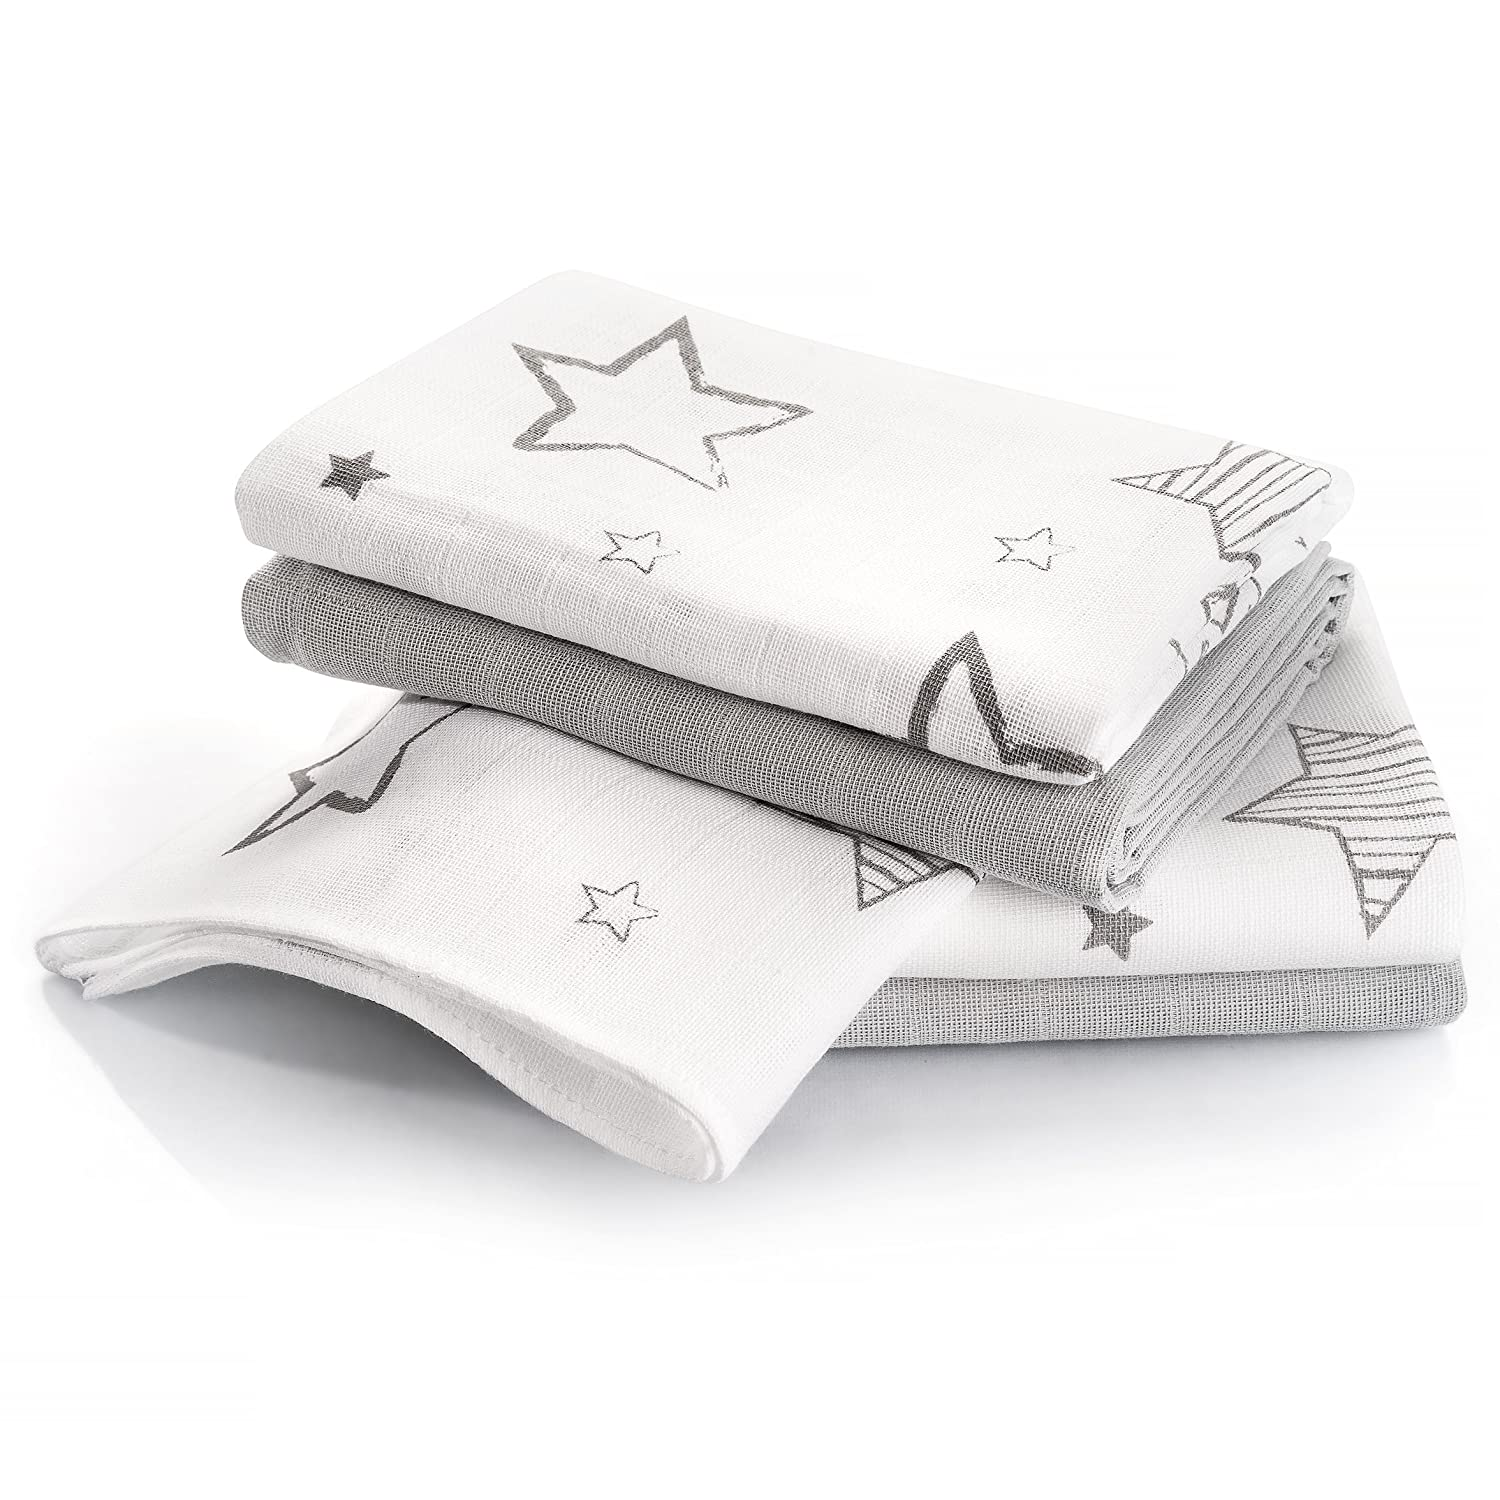 Makian - Muslin Squares / Nappies / Burp Cloths / 4 Pack / 70x70 cm / Grey Stars / Double Woven - Oeko-Tex Certified, washable at 60°C